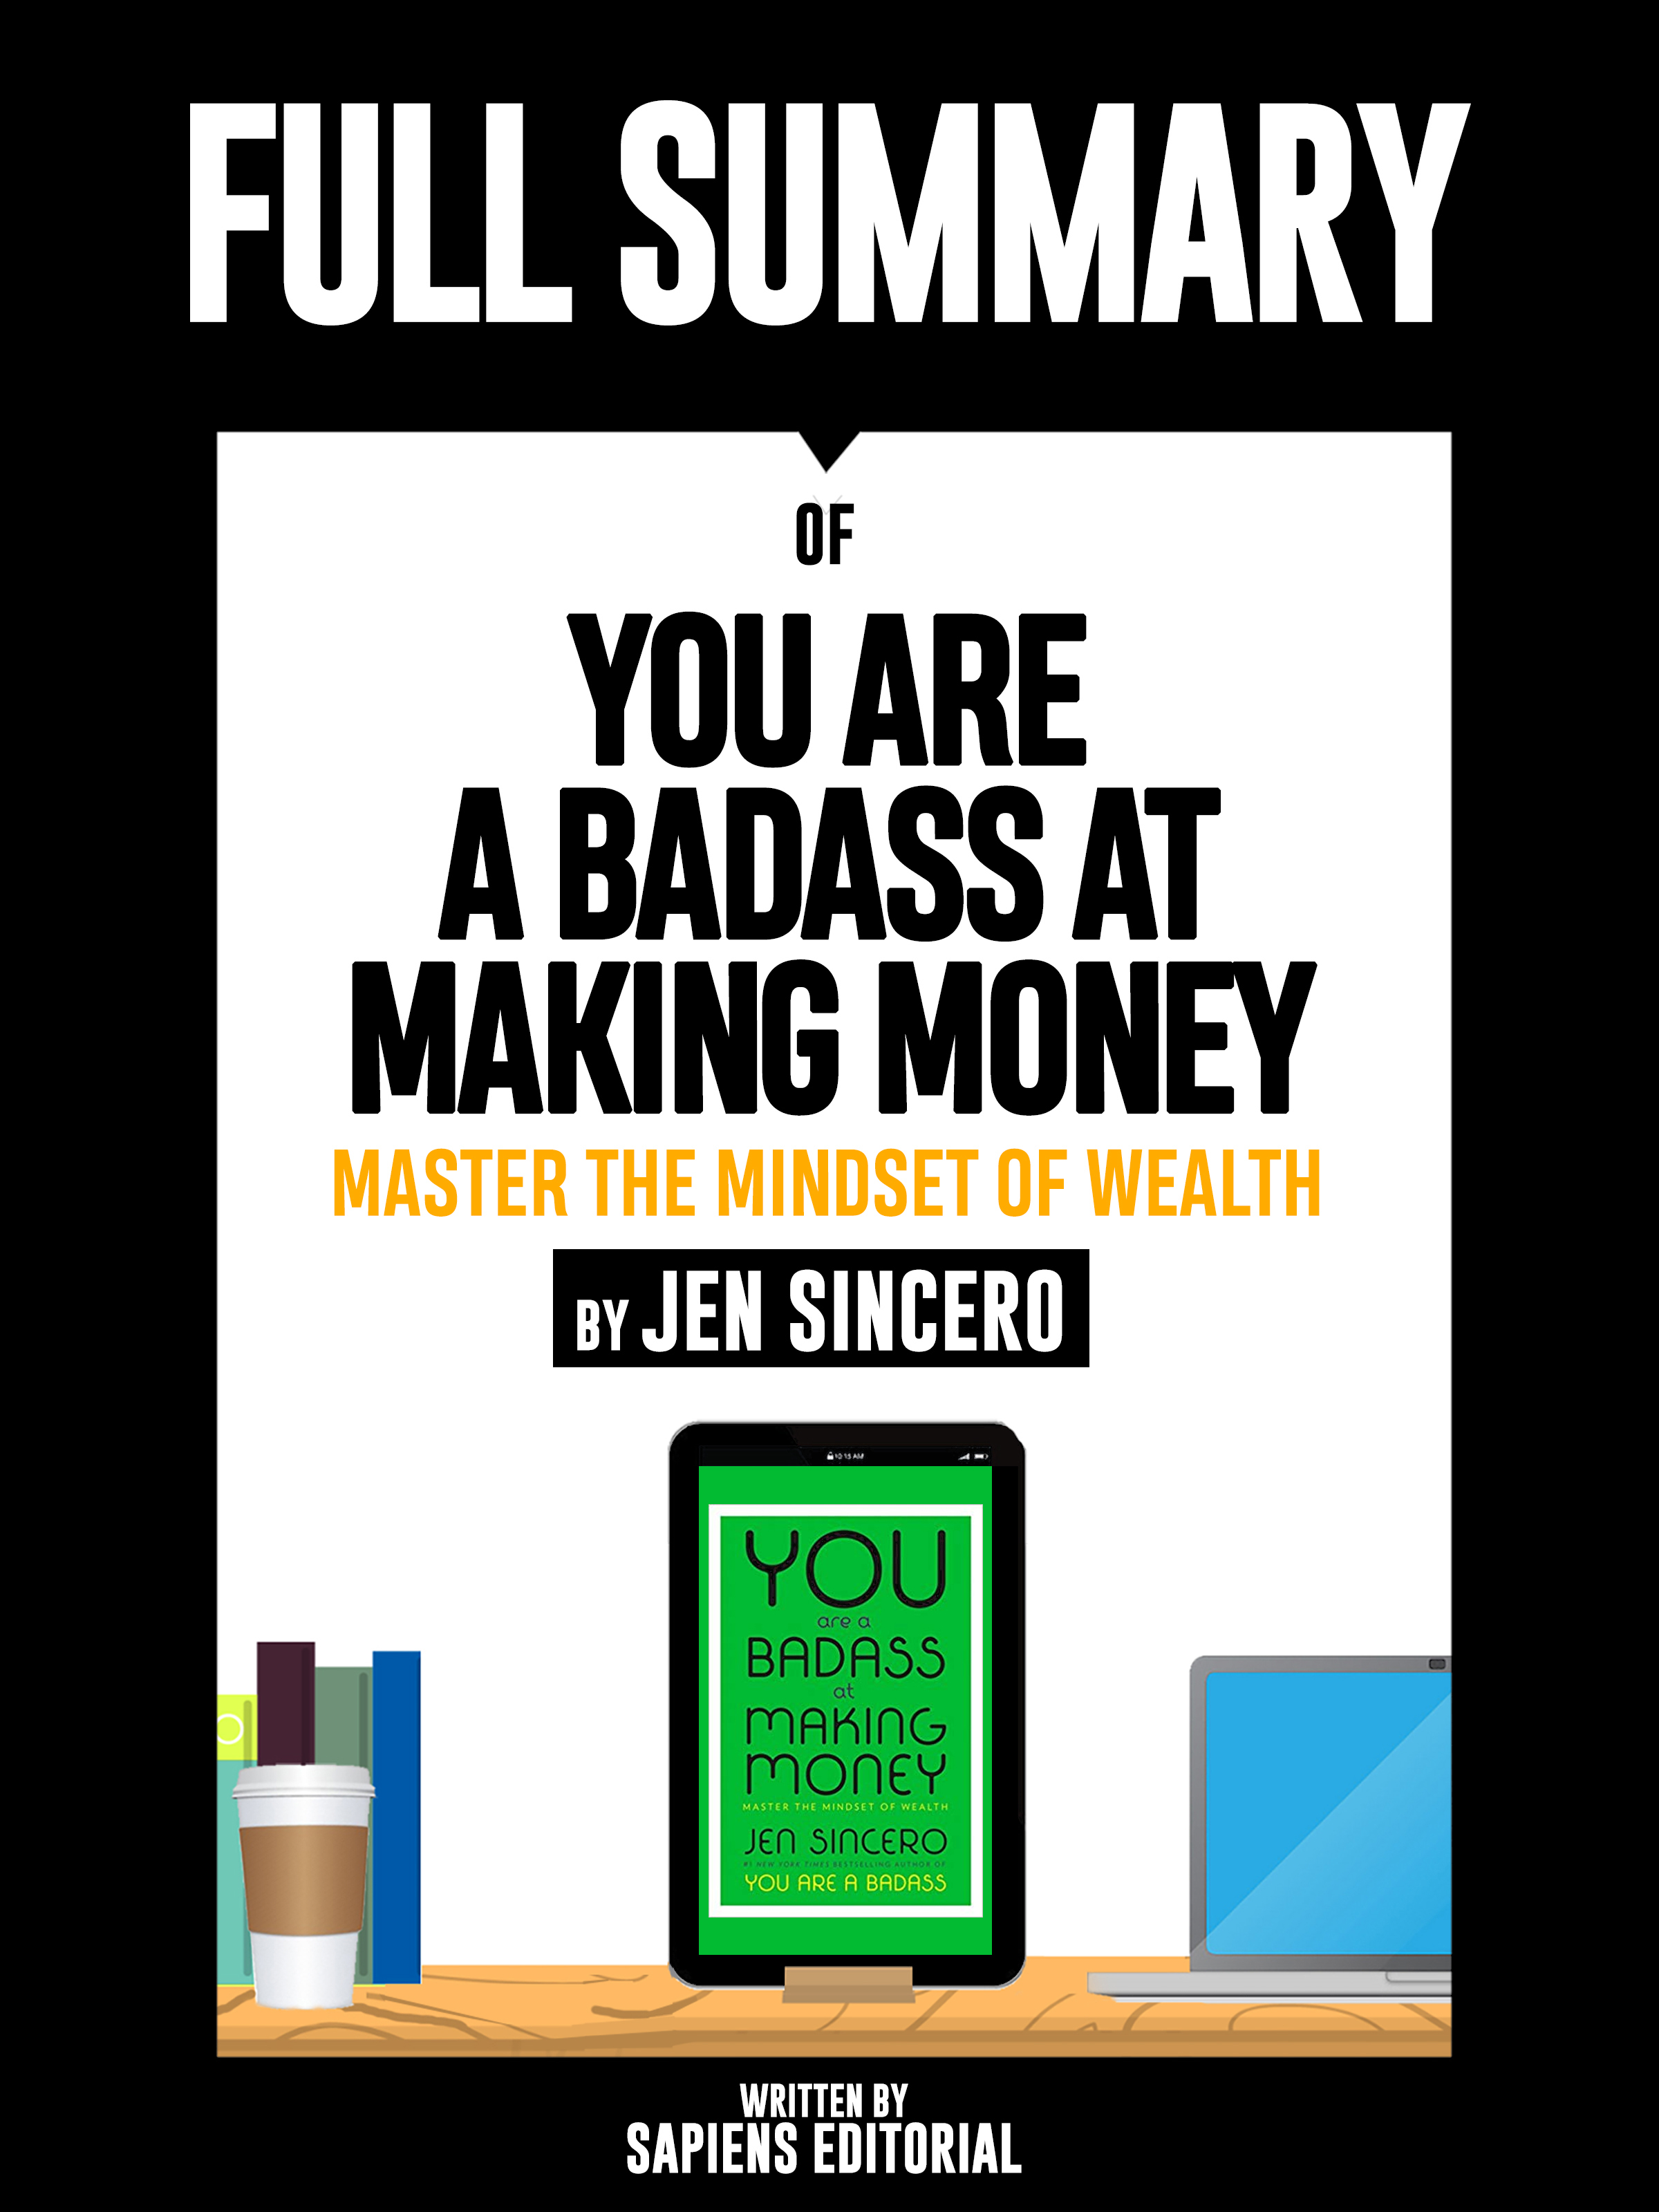 Sapiens Editorial Full Summary Of You Are A Badass At Making Money: Master The Mindset Of Wealth – By Jen Sincero jacob gold money mindset formulating a wealth strategy in the 21st century